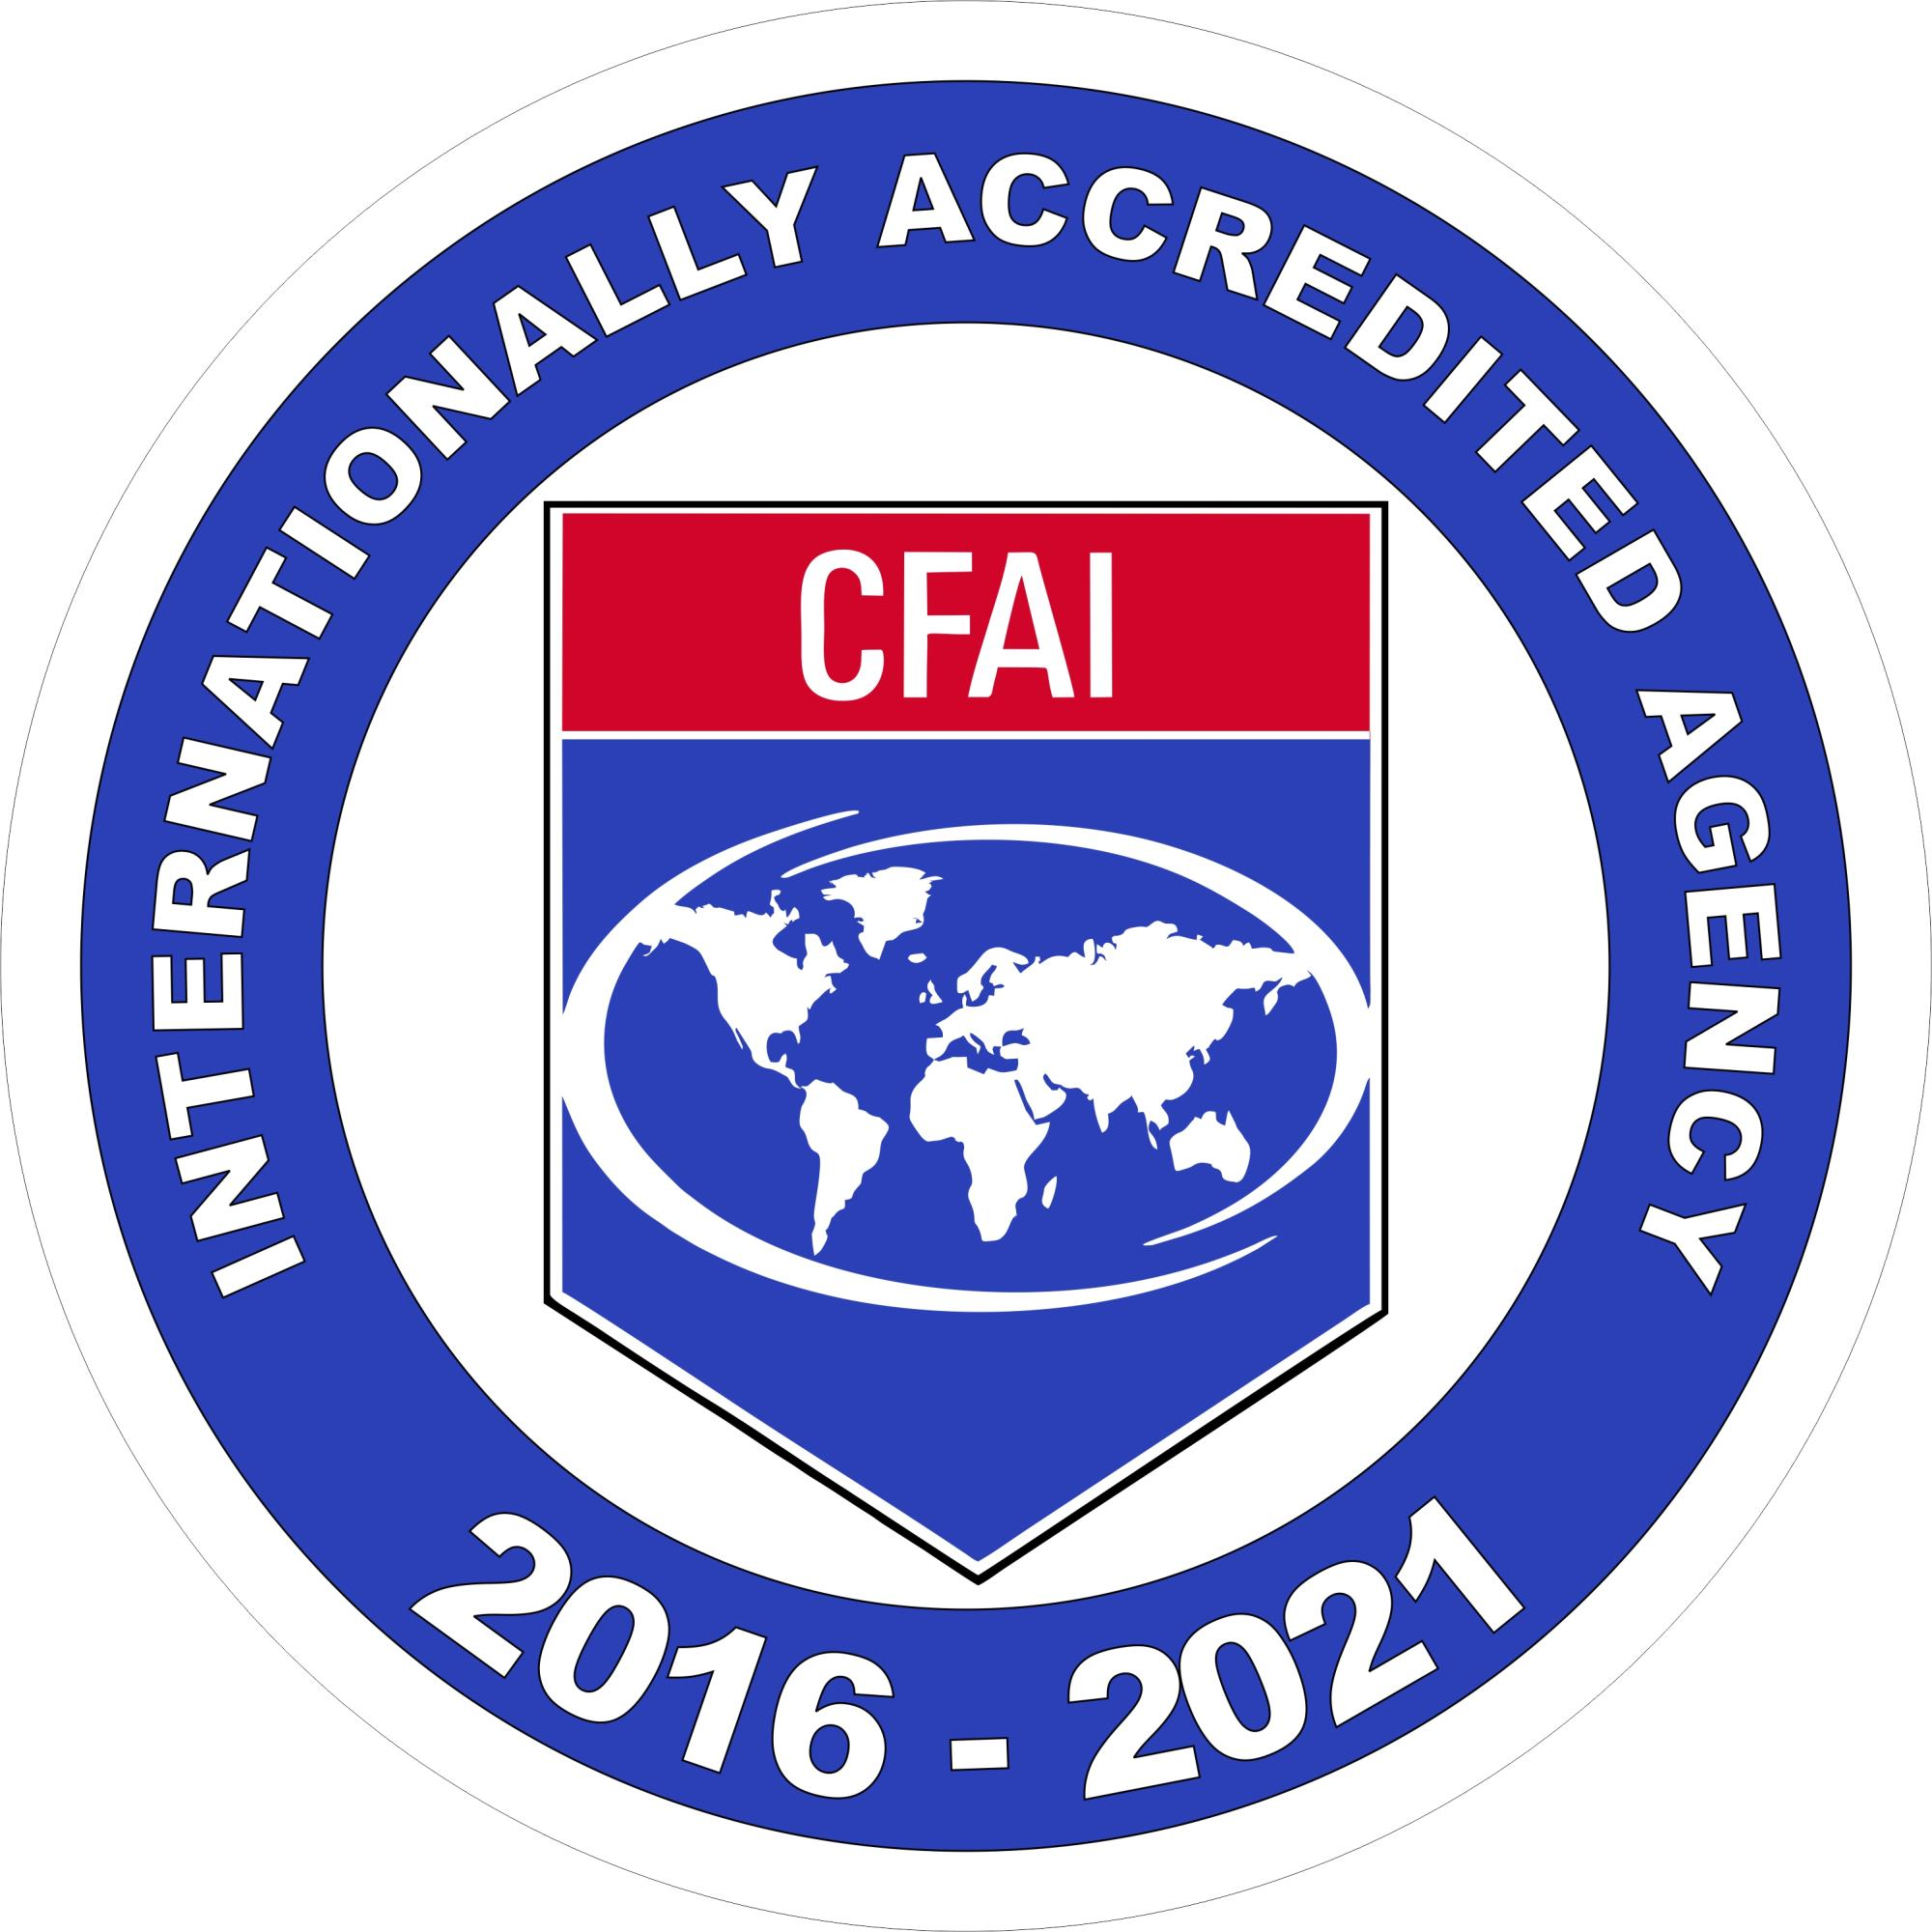 International Accredited Agency 2015-2020